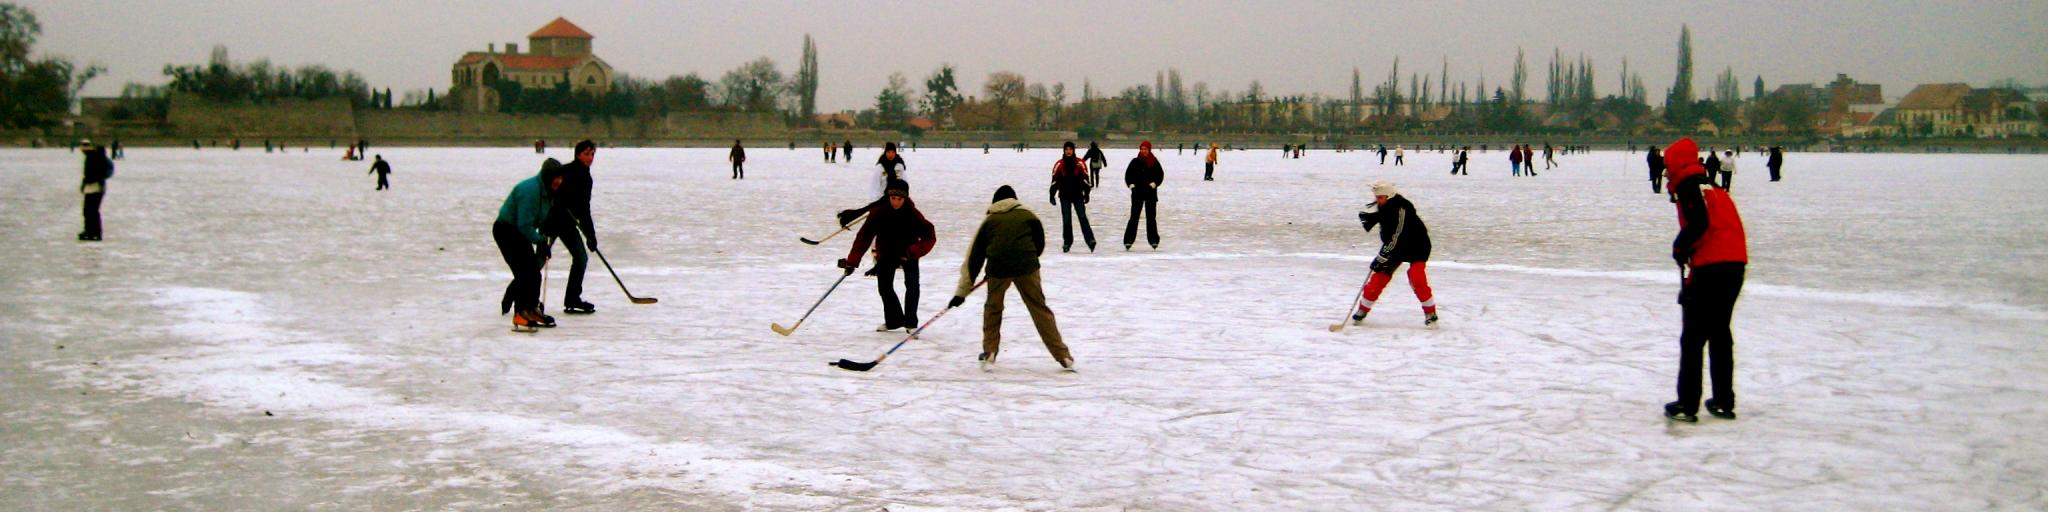 In wintertime, the lake in Tata freezes over and becomes a playground for kids and keen ice hockey players